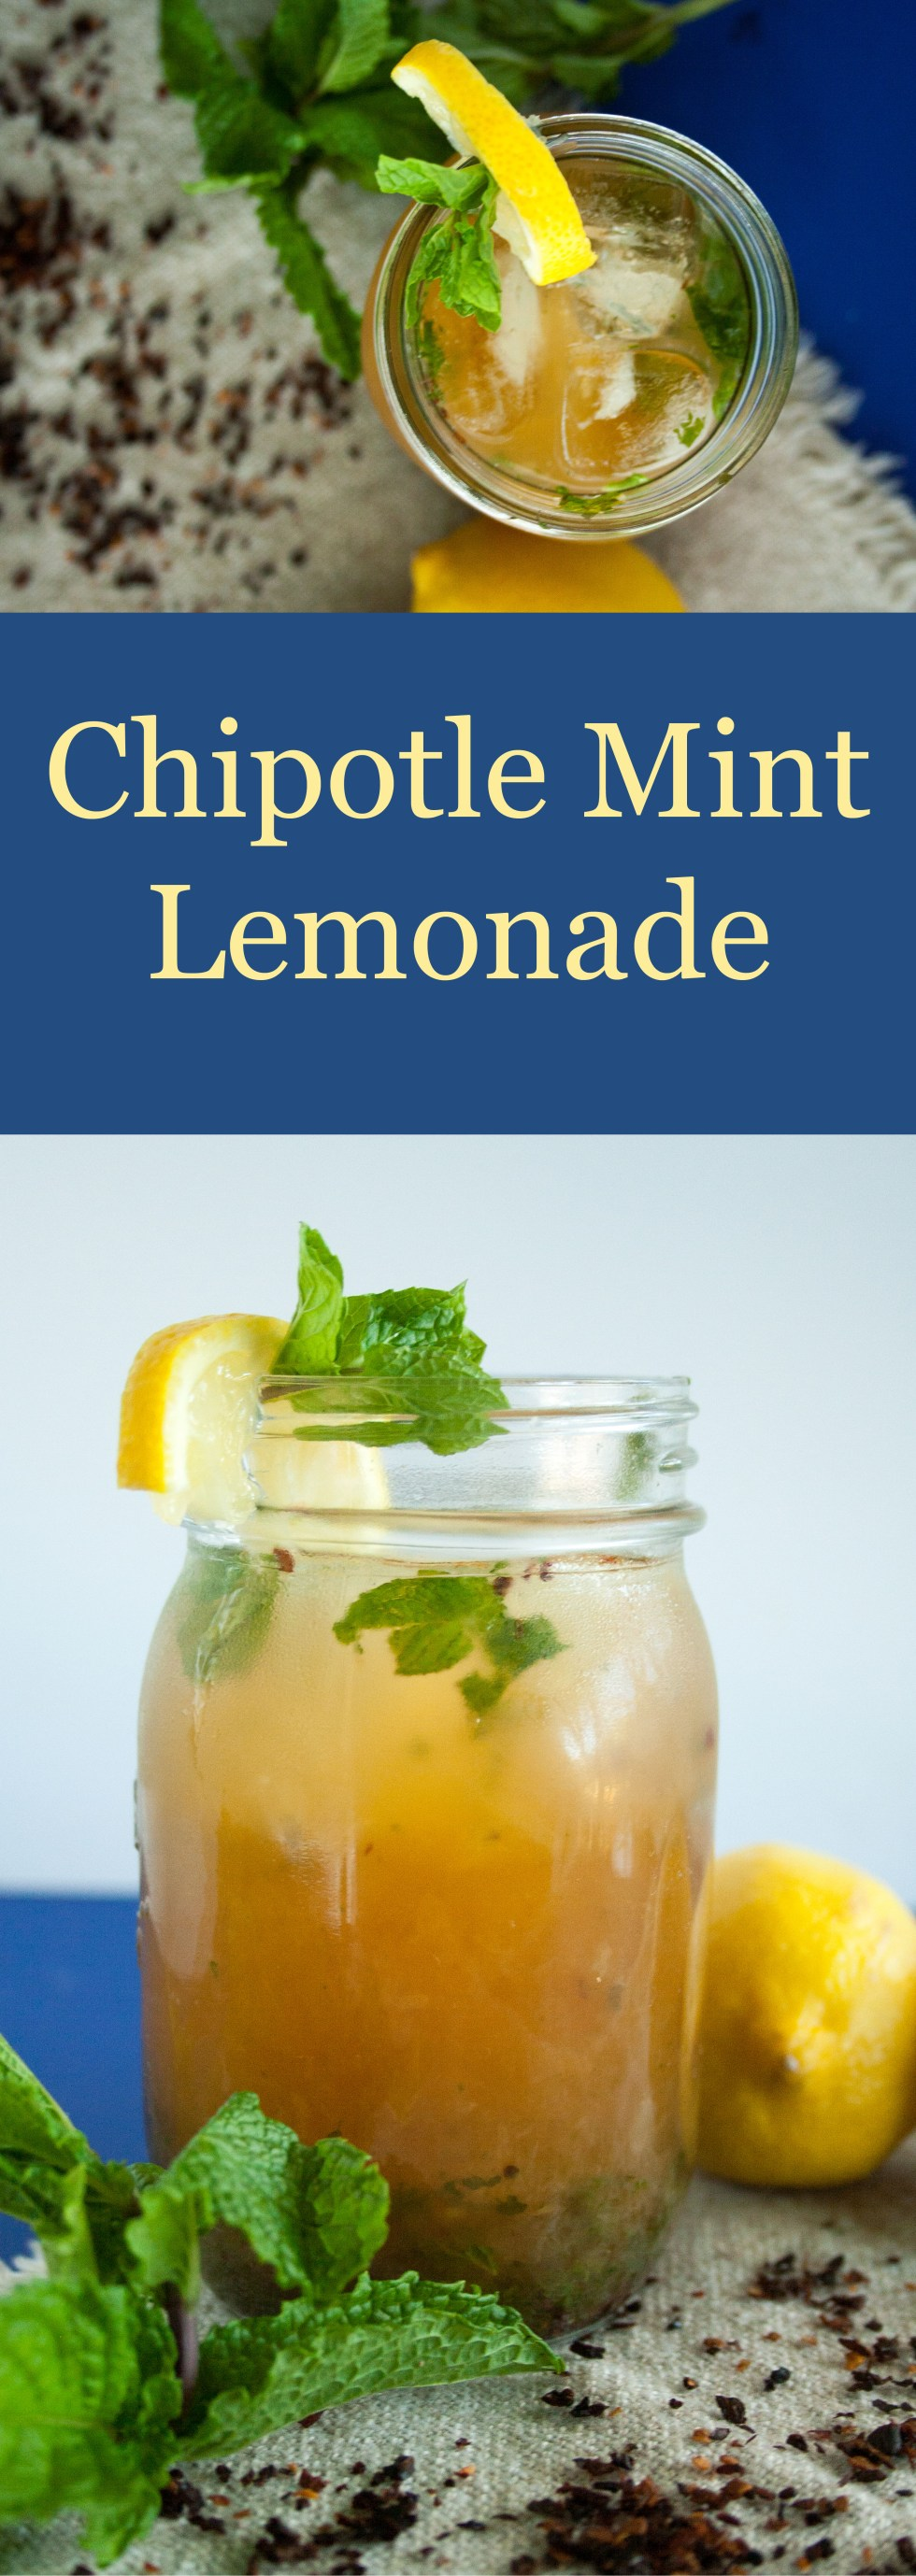 Chipotle Mint Lemonade (vegan, gluten free) - This easy lemonade is sweet, smoky, and minty. Add some vodka for a refreshing cocktail!